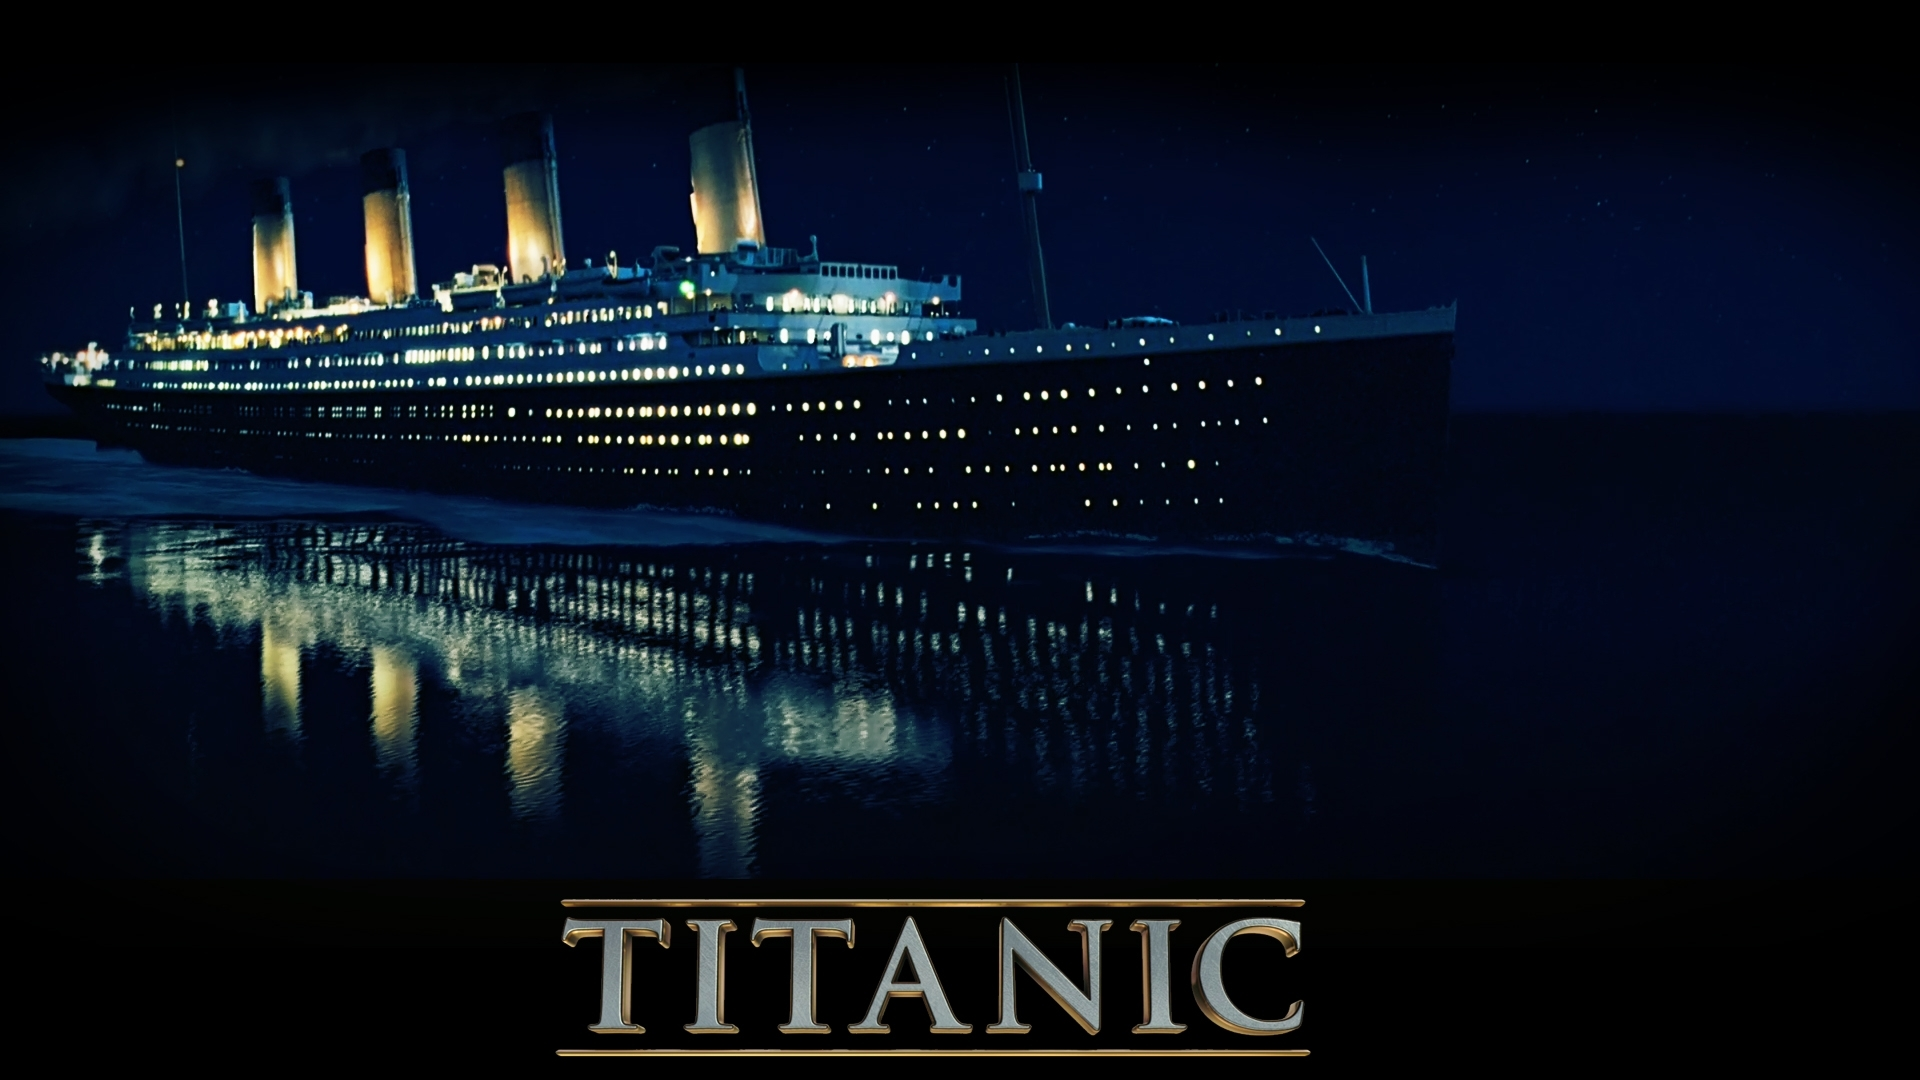 Titanic Ship 3d Wallpaper Free Download Titanic Movie Wallpaper Free Wallpaper World